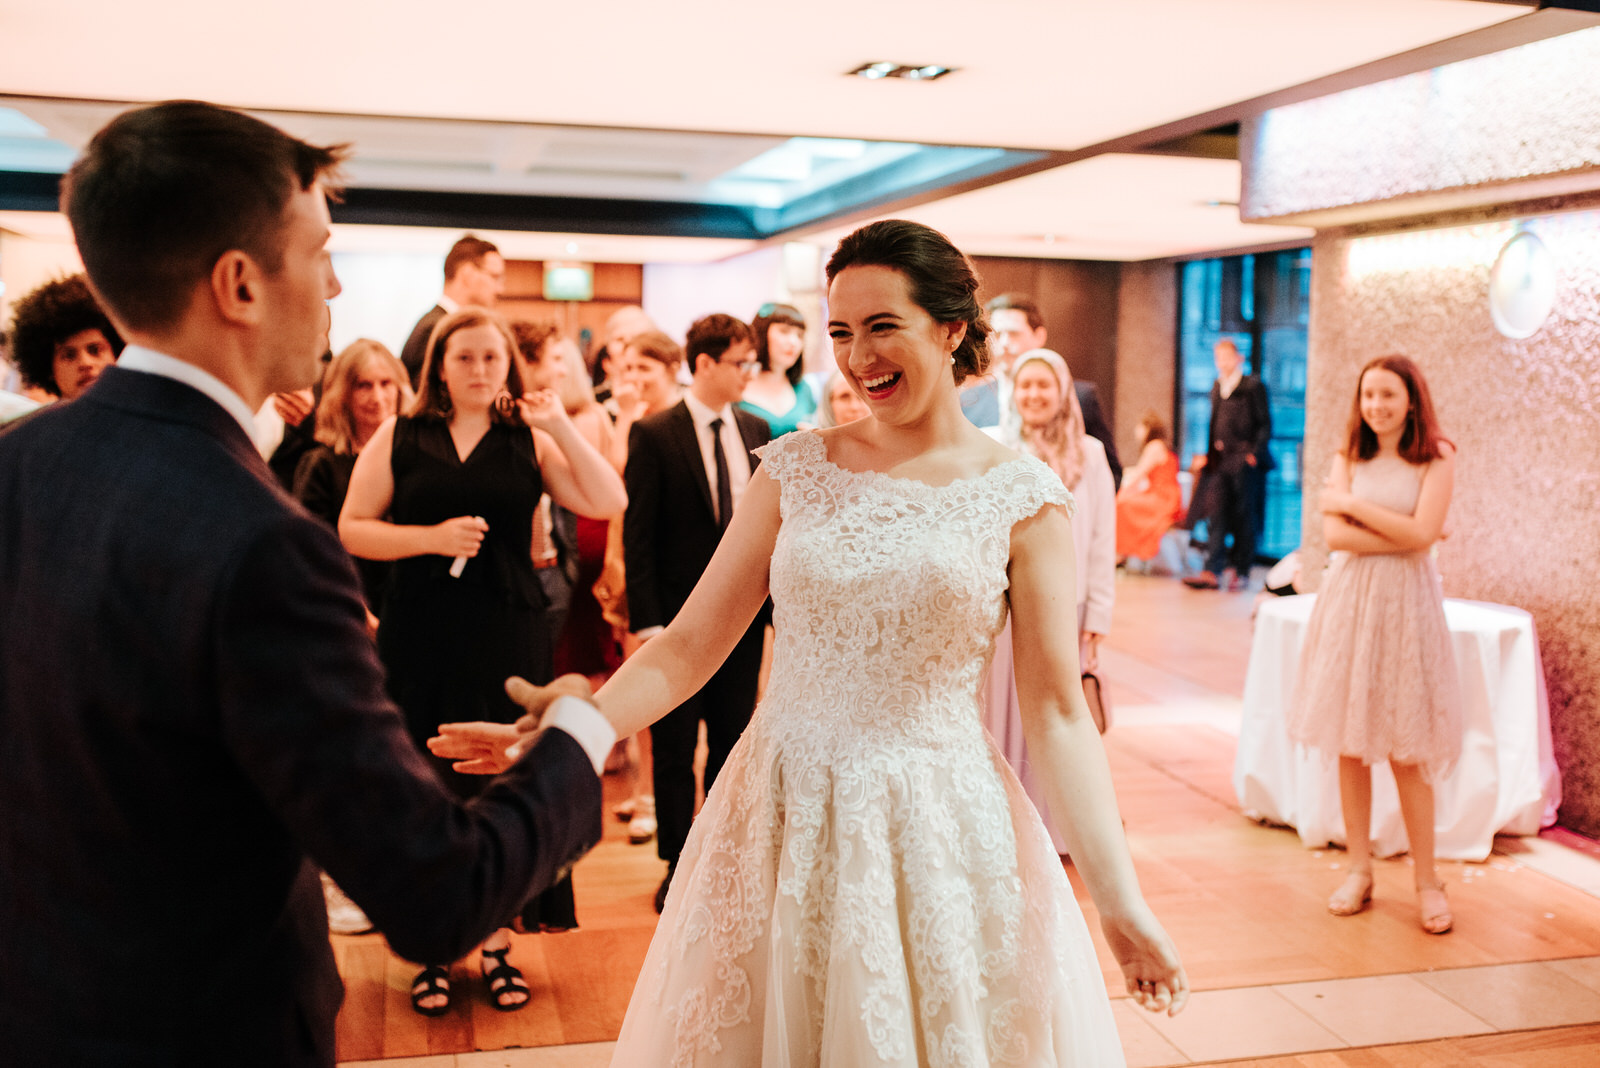 Bride smiles as she and groom begin their first dance